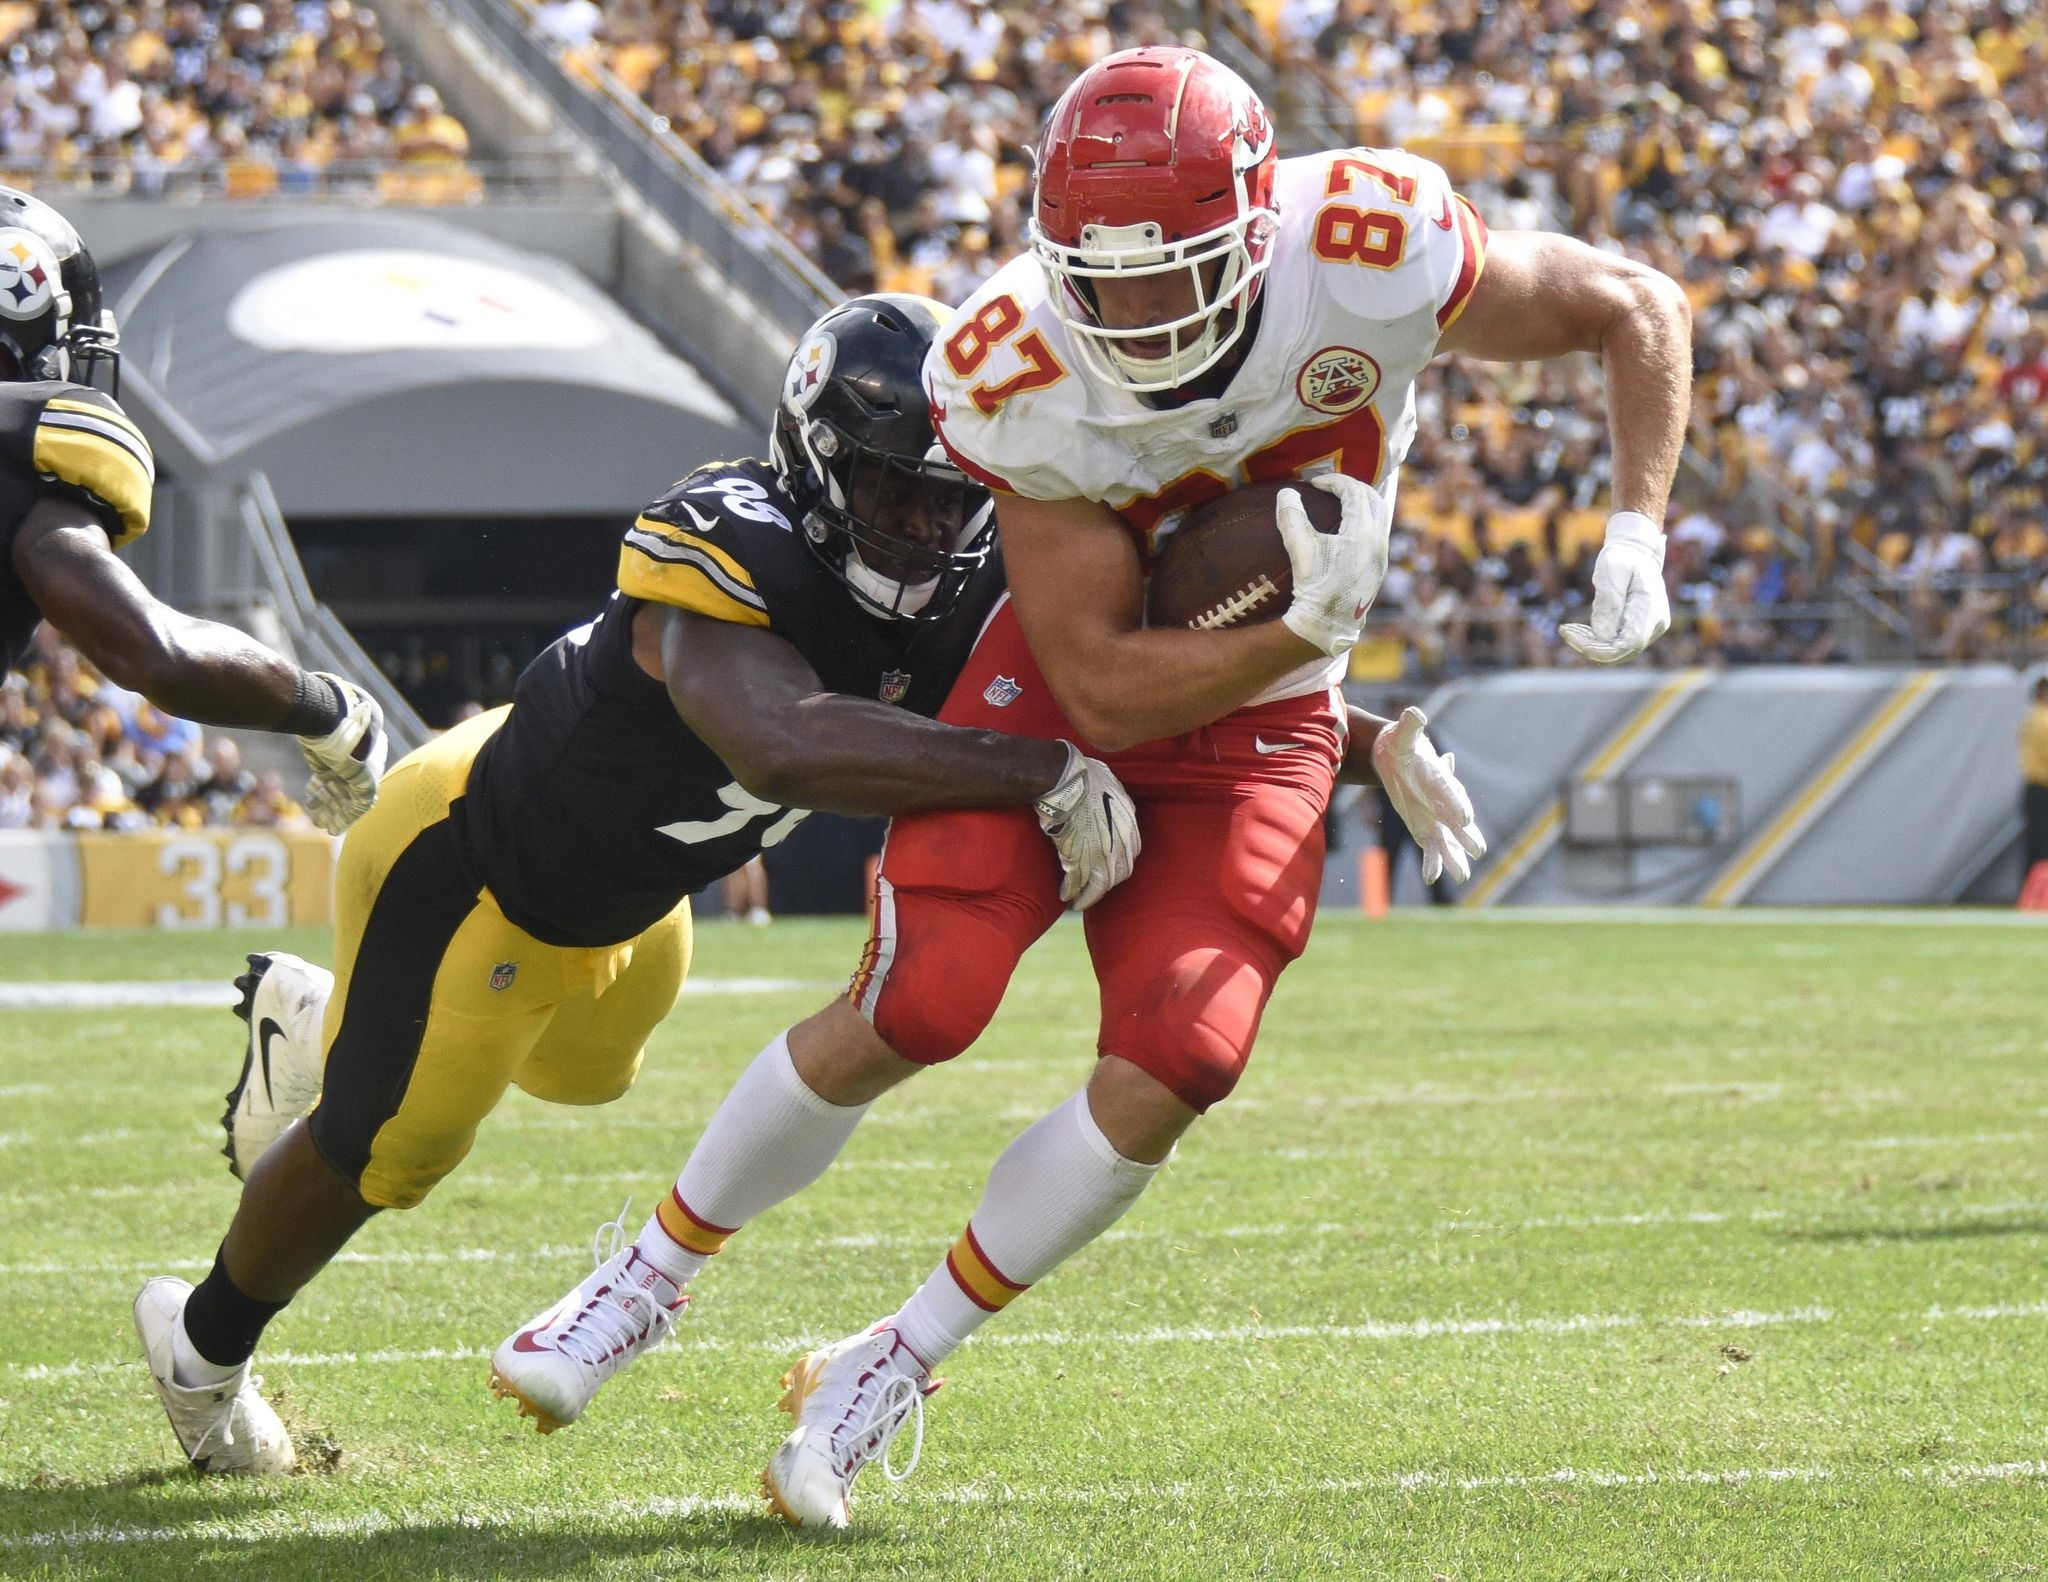 Chiefs_broncos_football_55525_s2048x1582